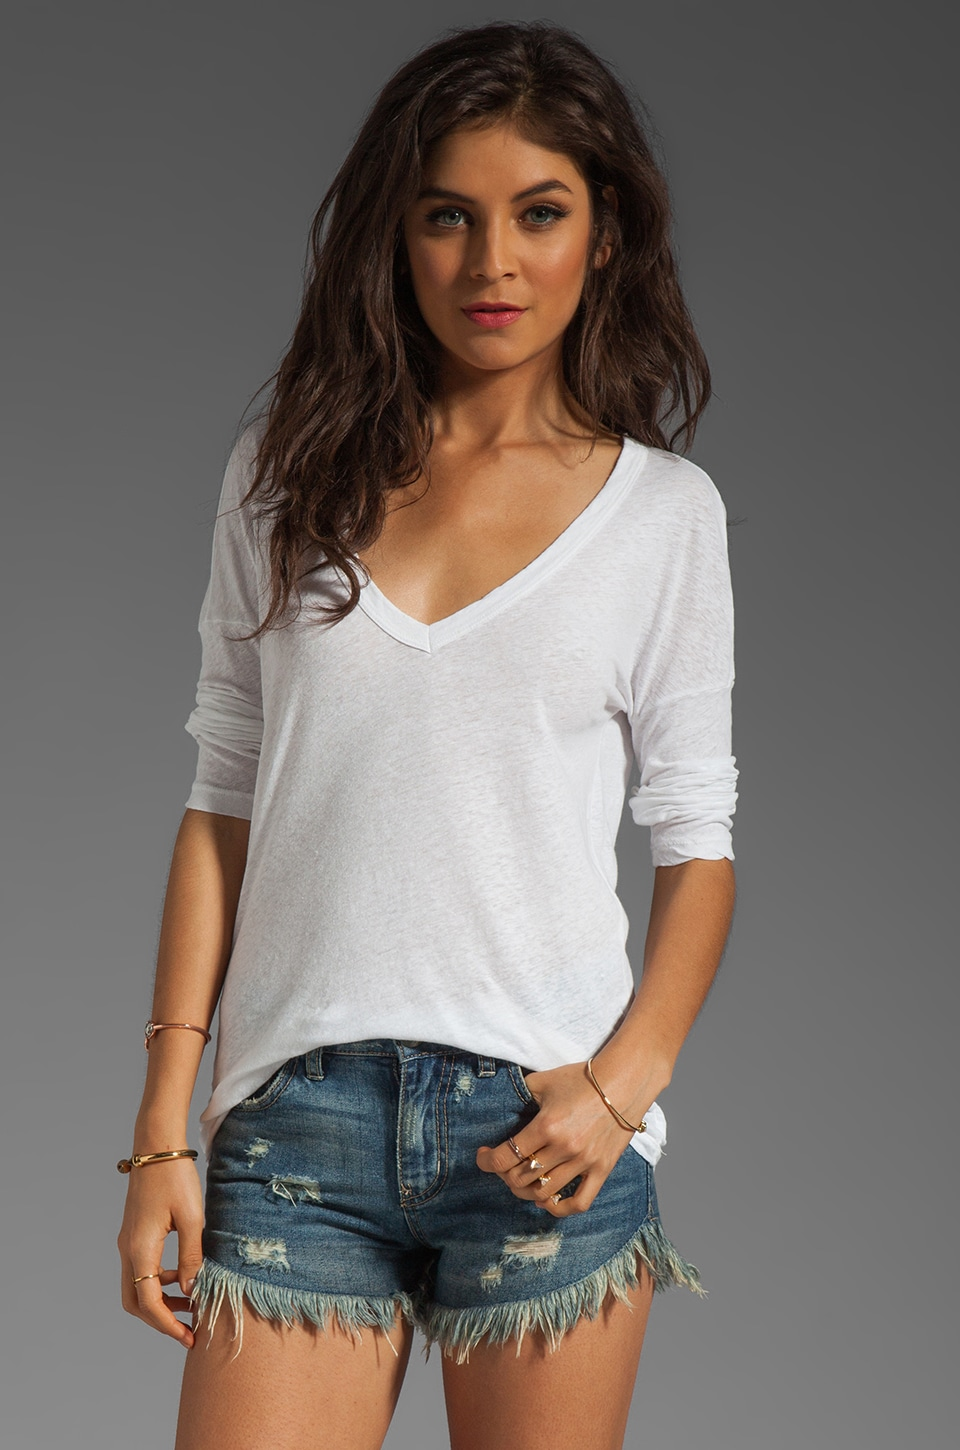 James Perse Relaxed Deep V Top in White